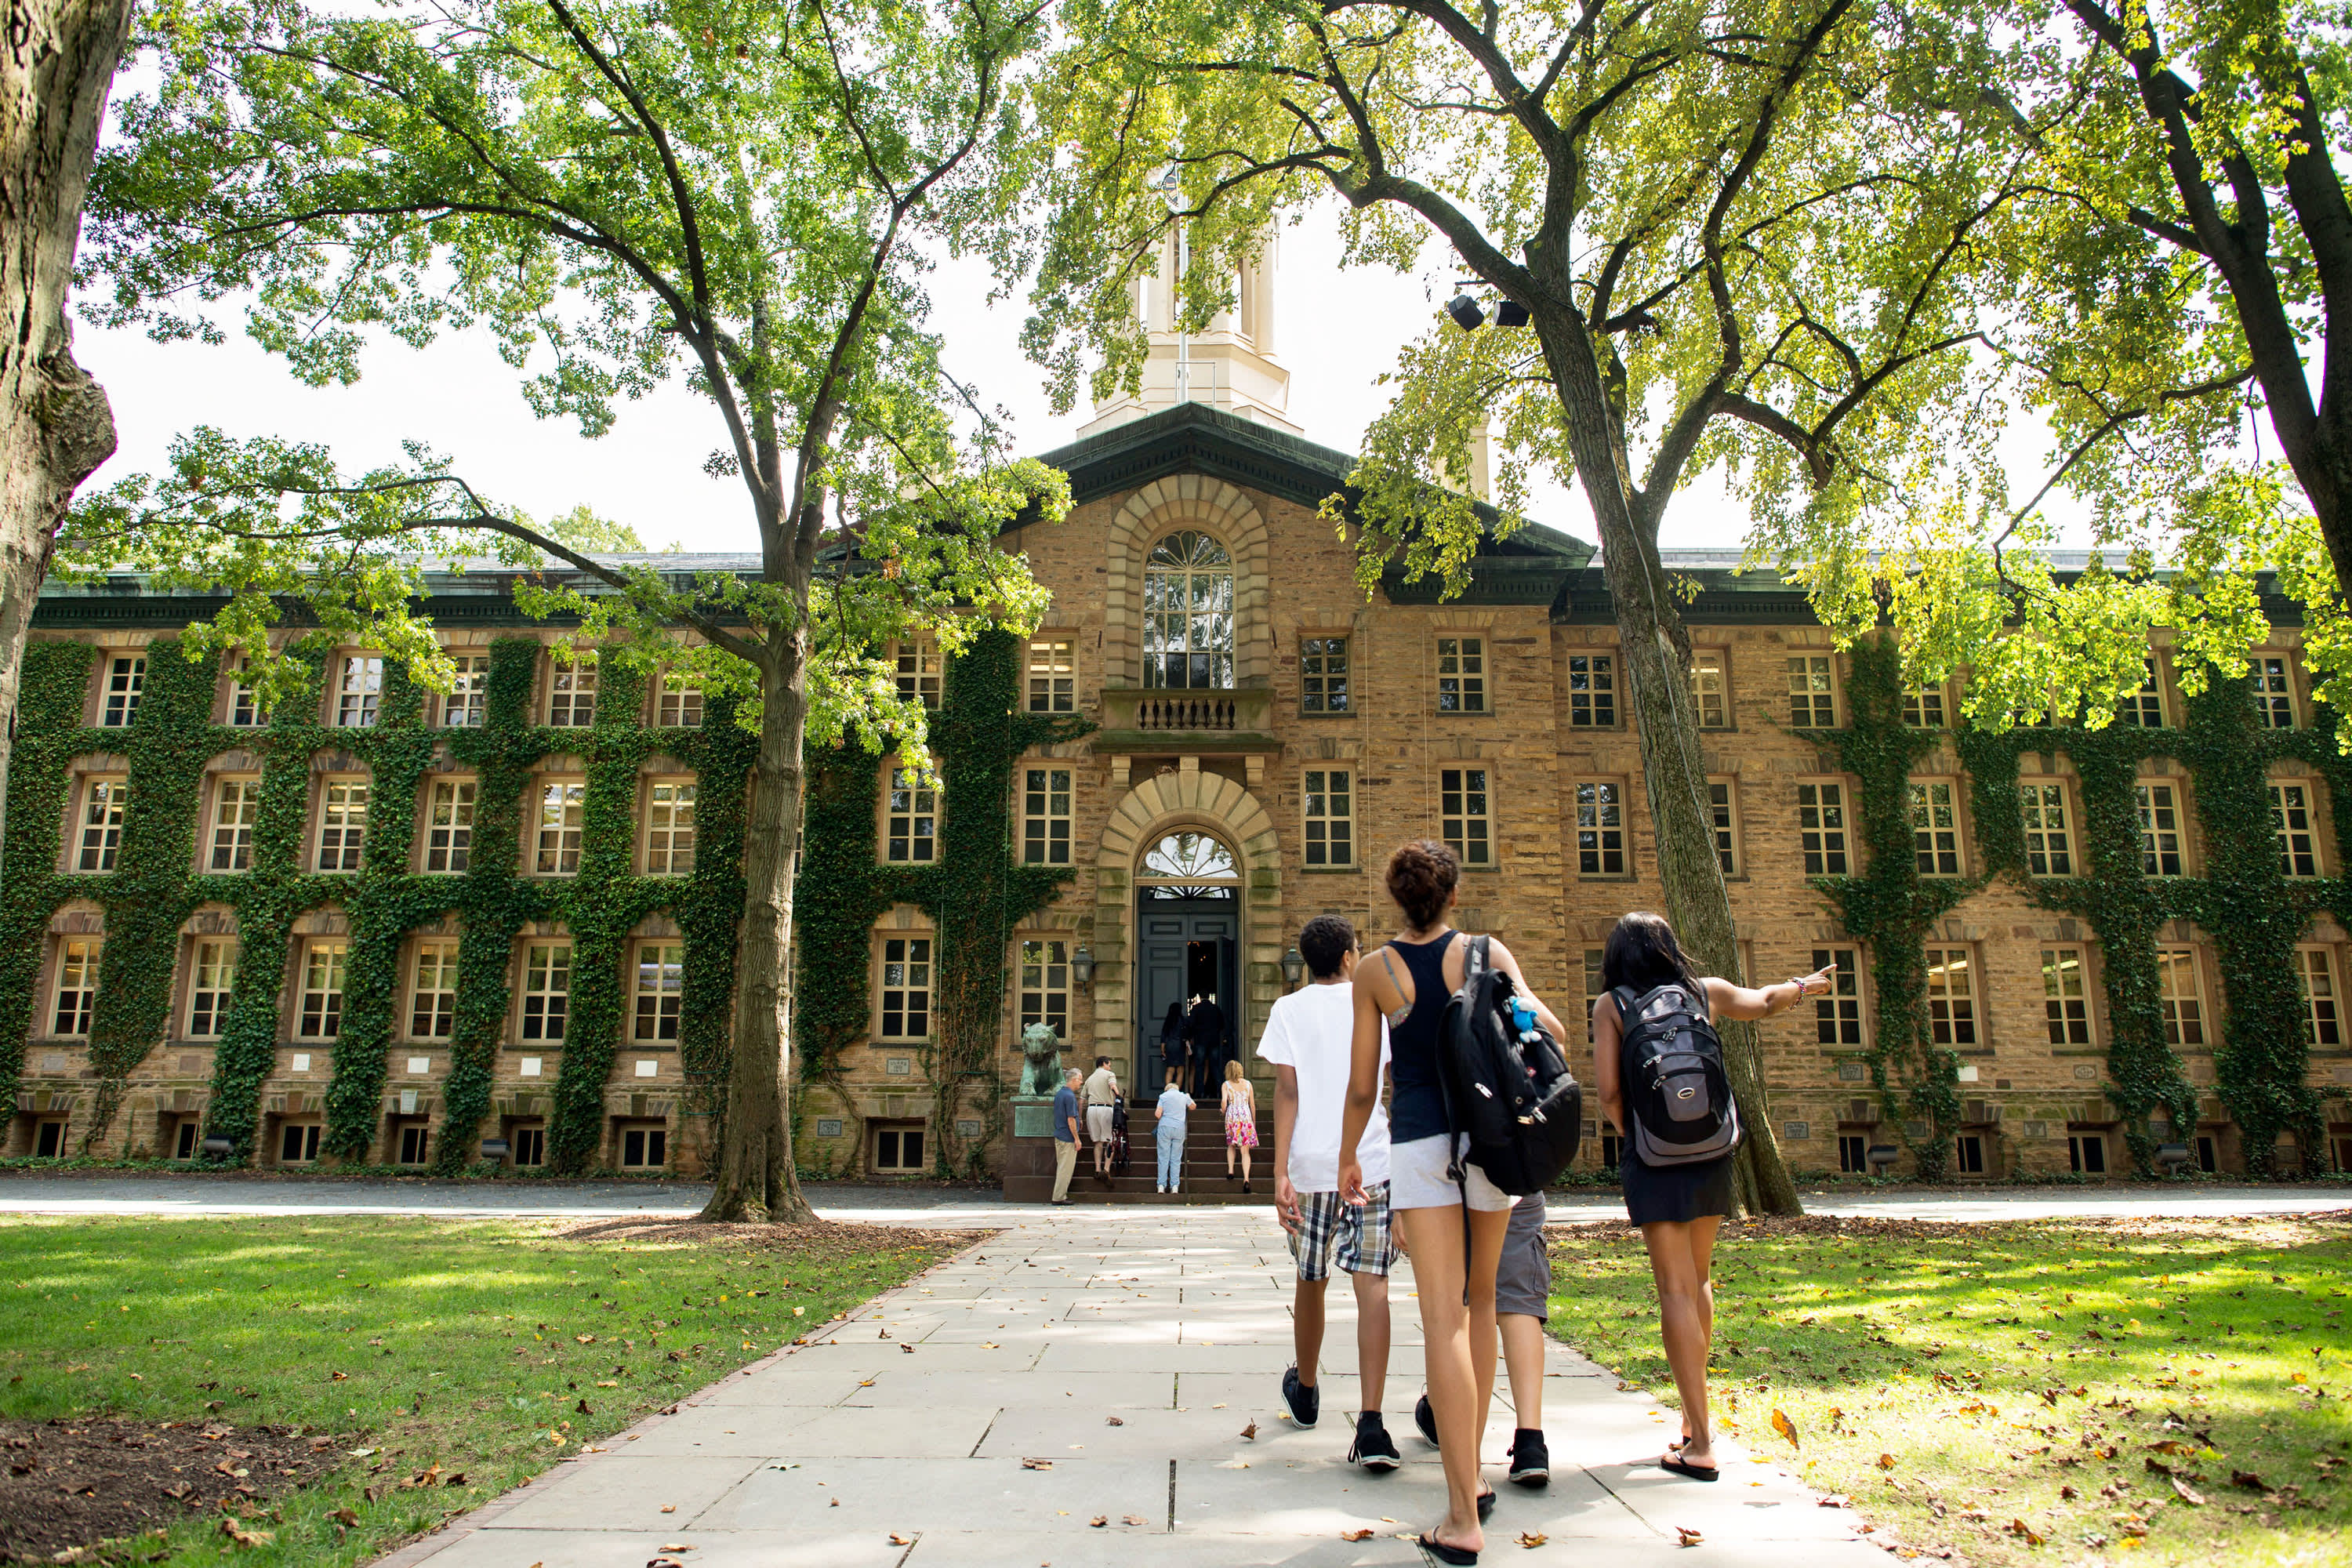 Many college students find themselves in a serious financial crisis